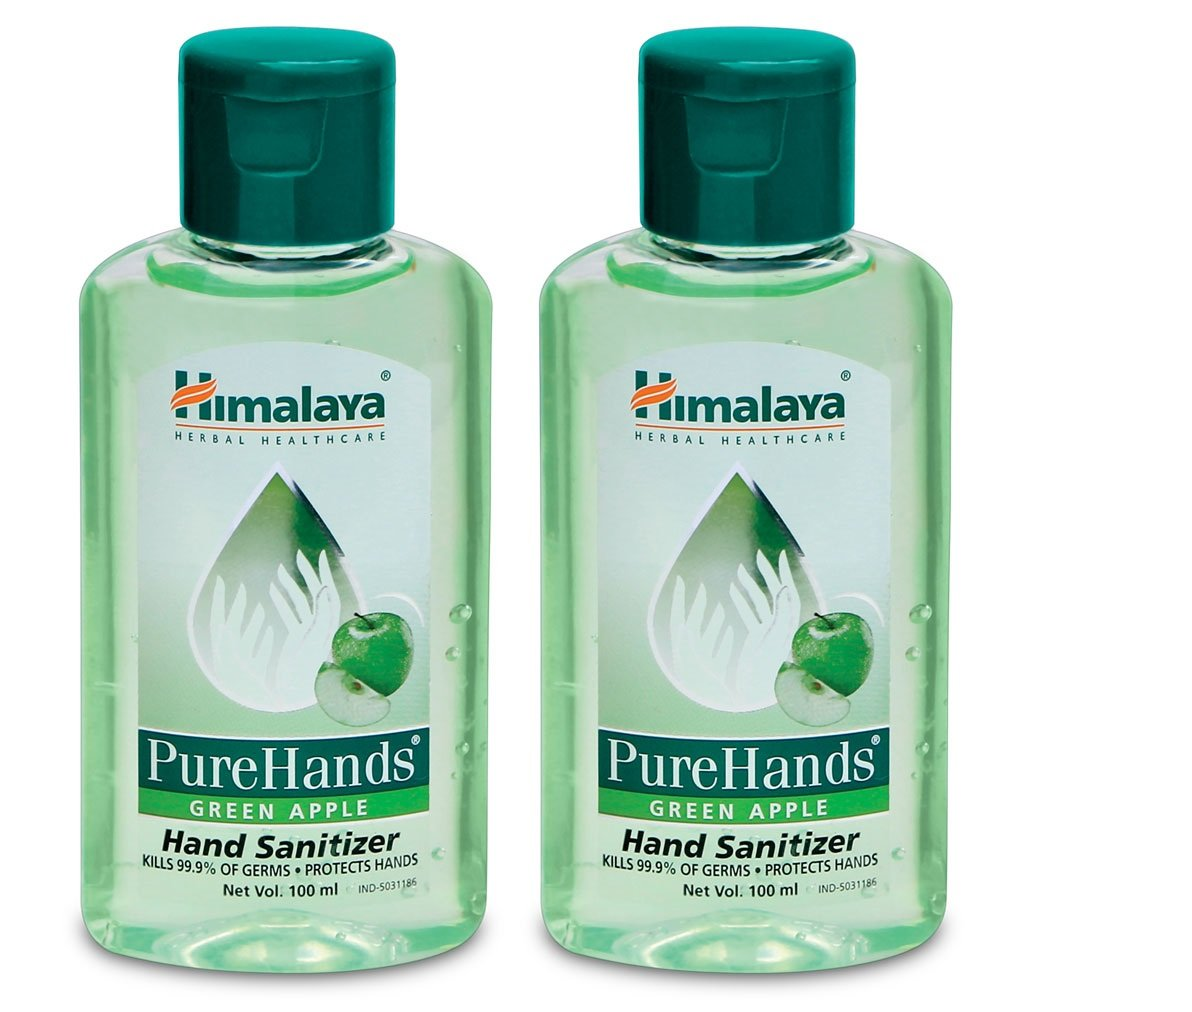 Buy Himalaya Hand Sanitizer Pack Of 2 Green Apple Online At Low